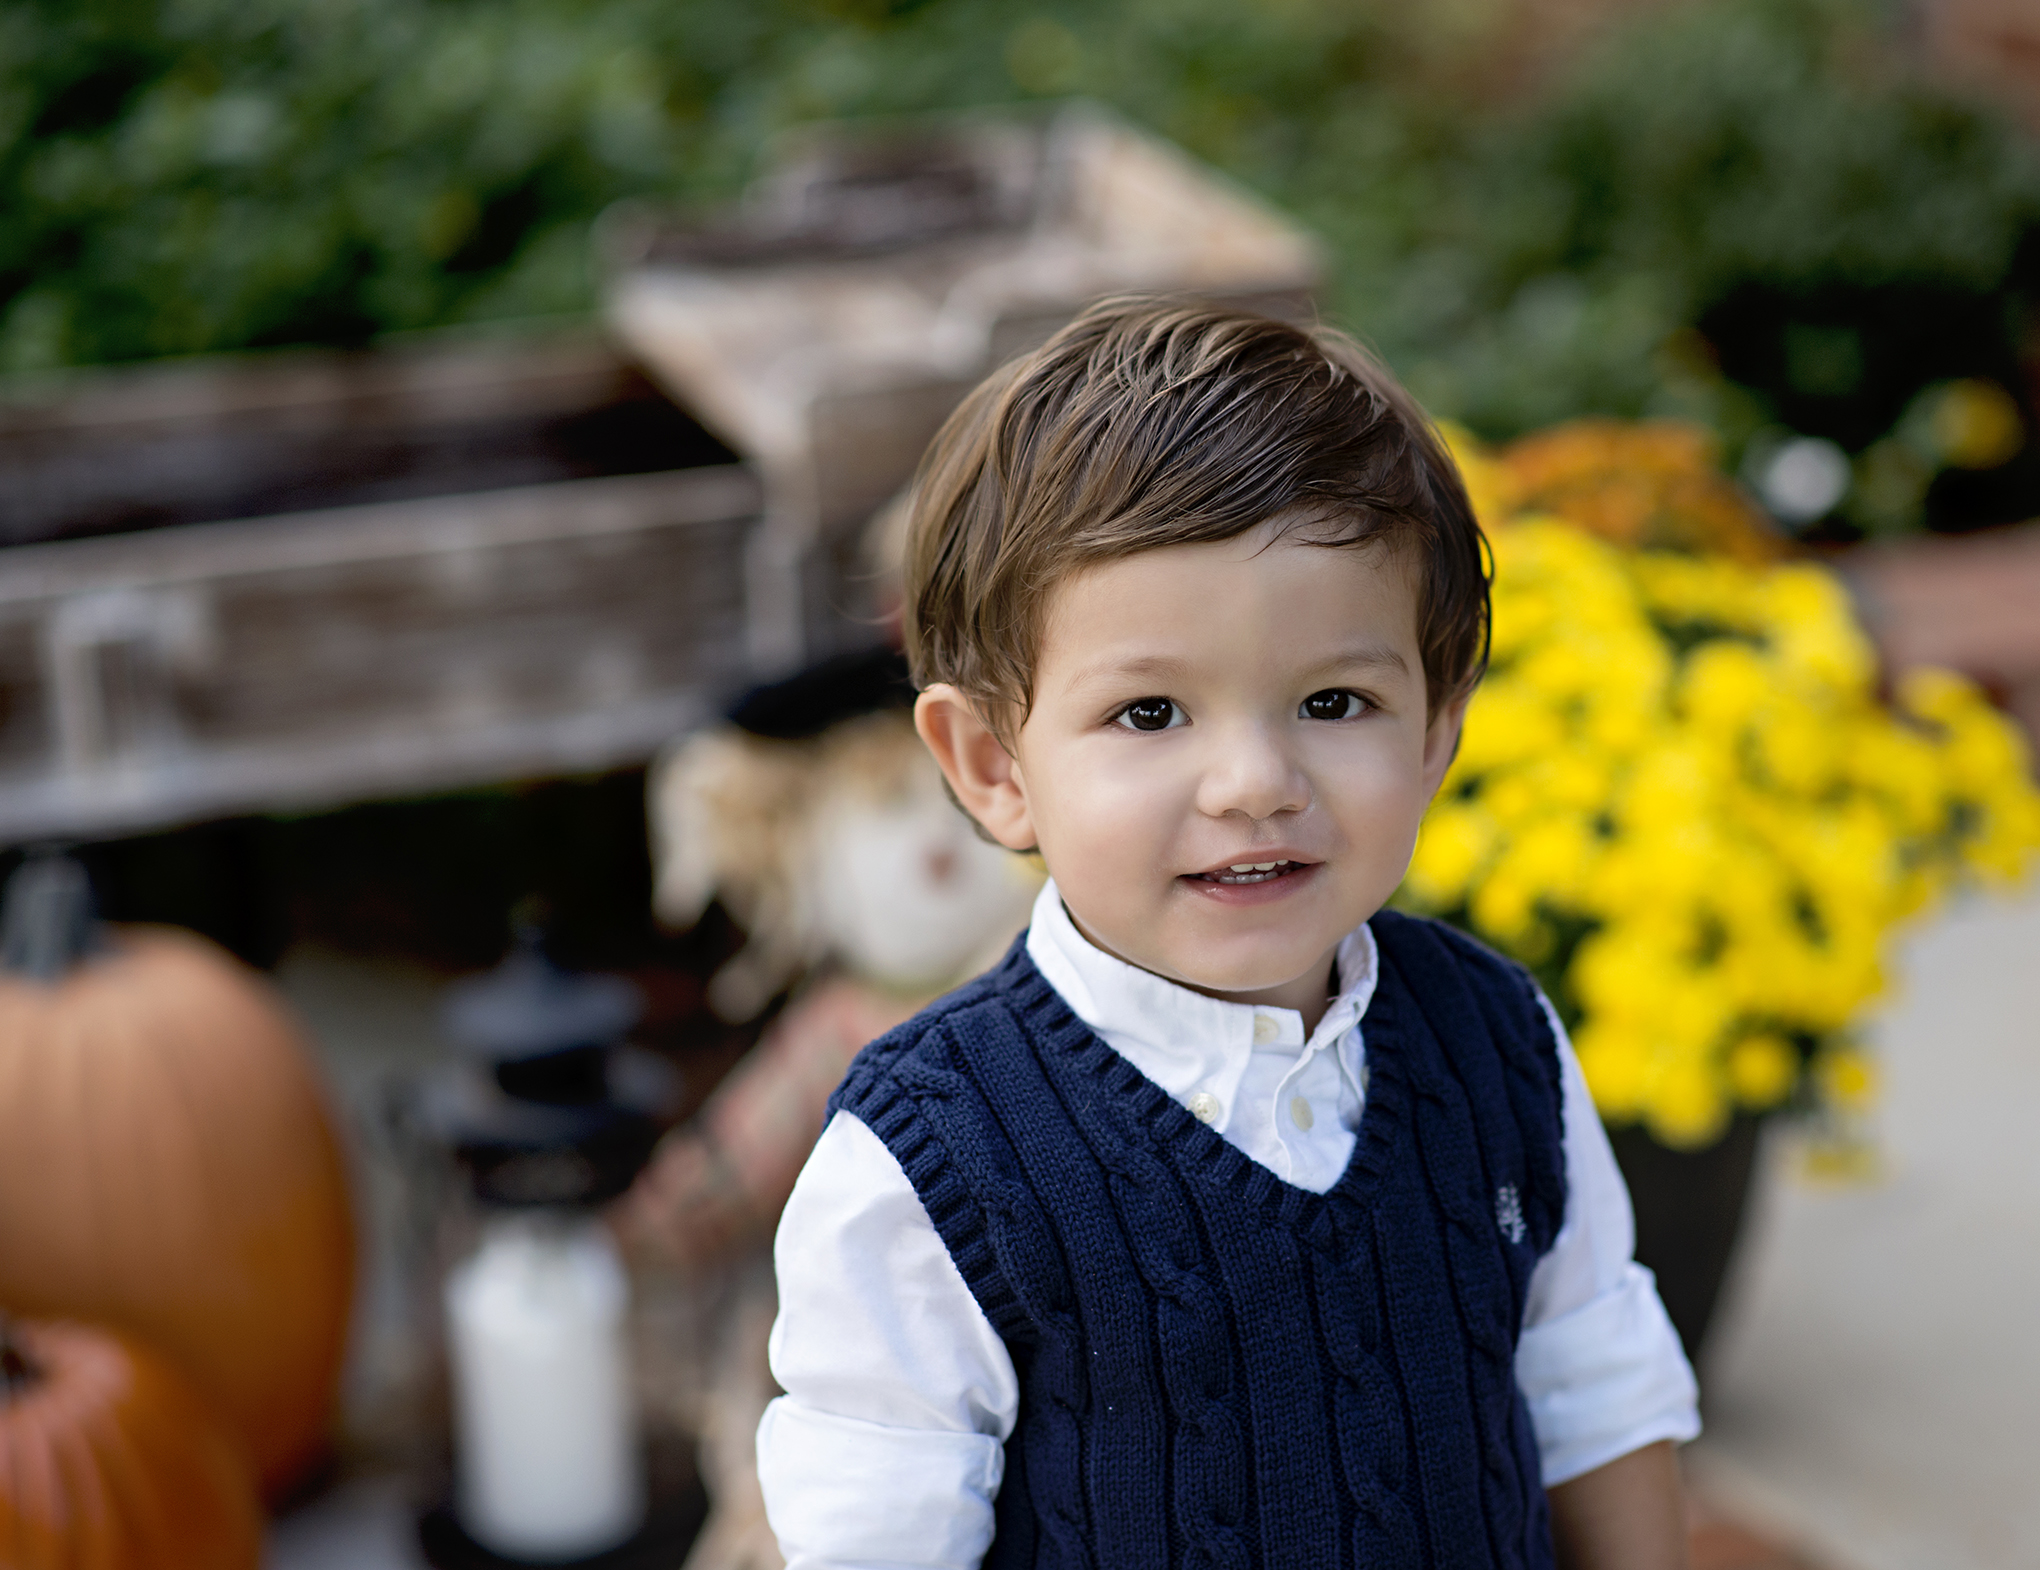 fun cousin session, fall colors, sweater weather, pumpkins, wagons, puddle jumping